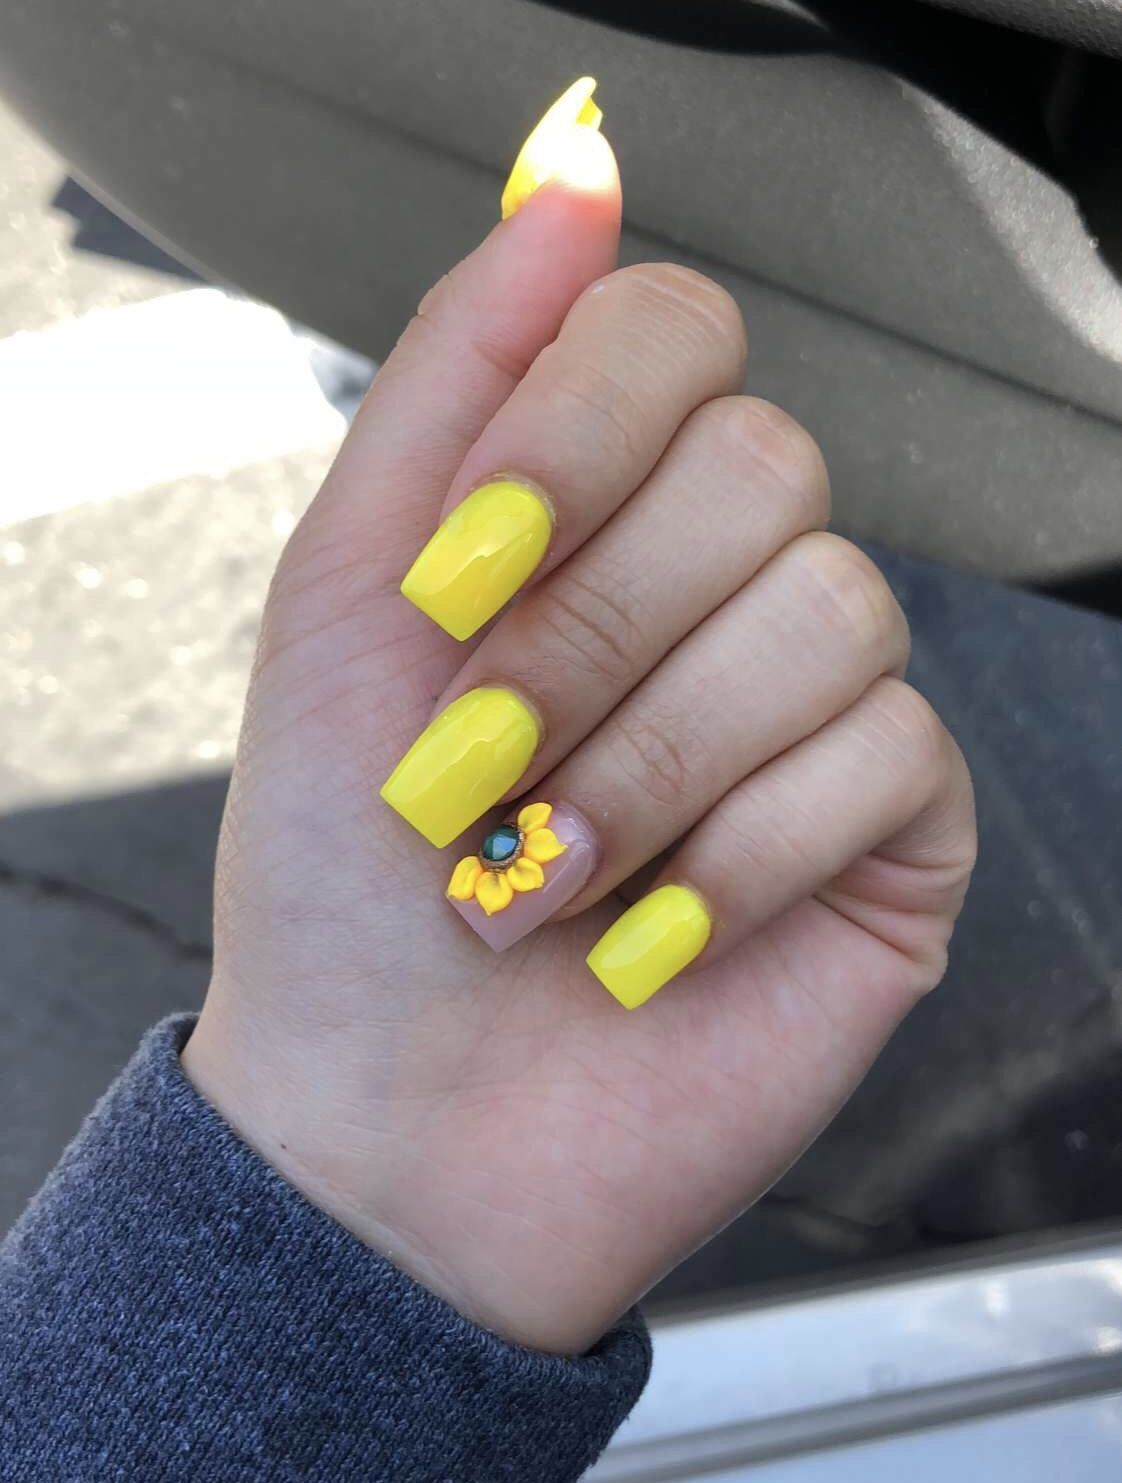 yellow sunflower nails✨ instagram @trina_nguyen